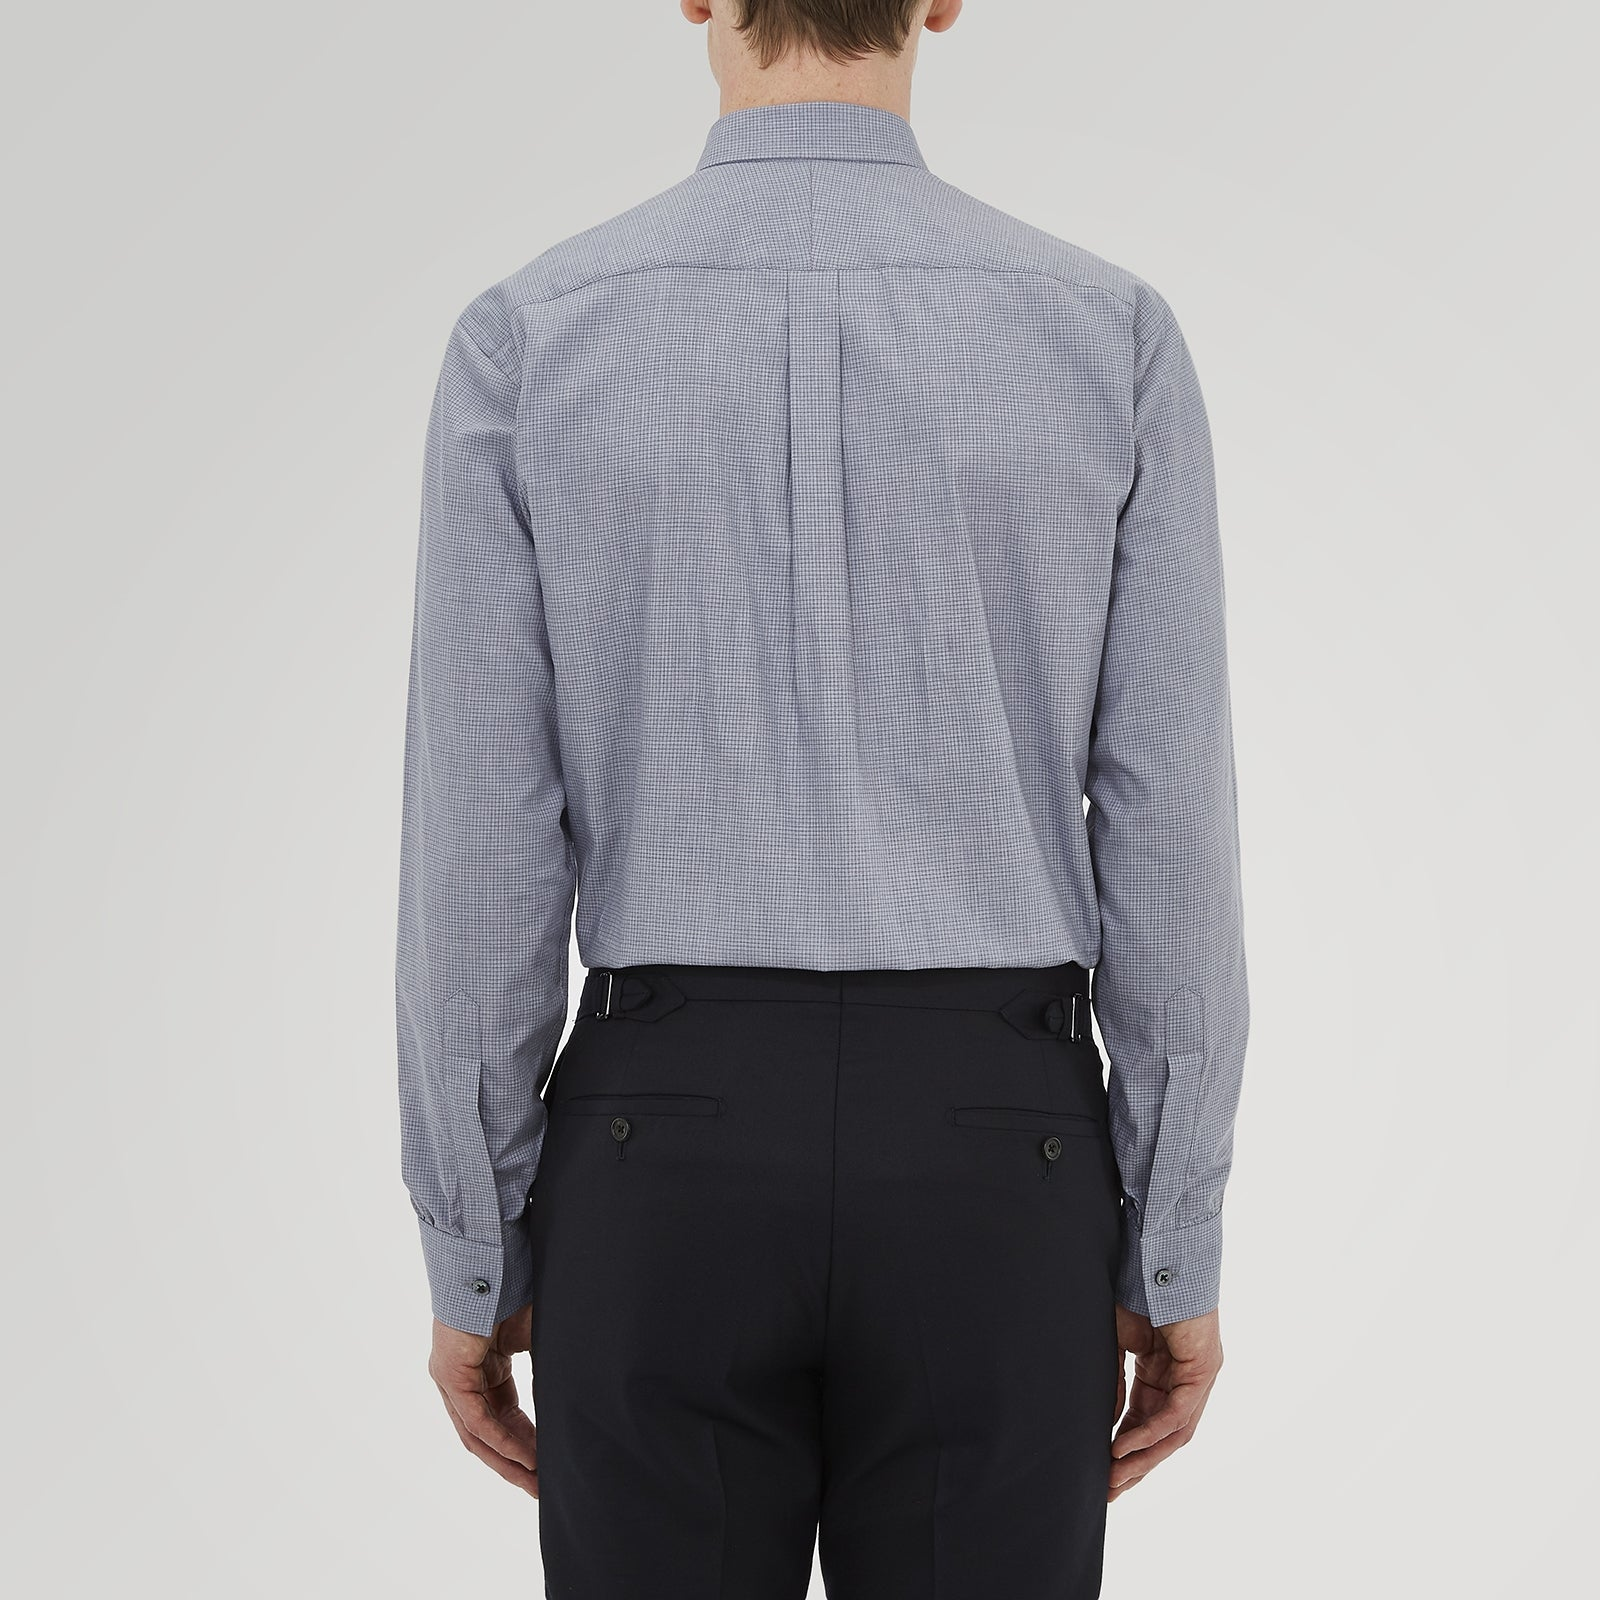 Weekend Fit Grey Cashmerello Light Shirt with Dorset Collar and 1-Button Cuffs